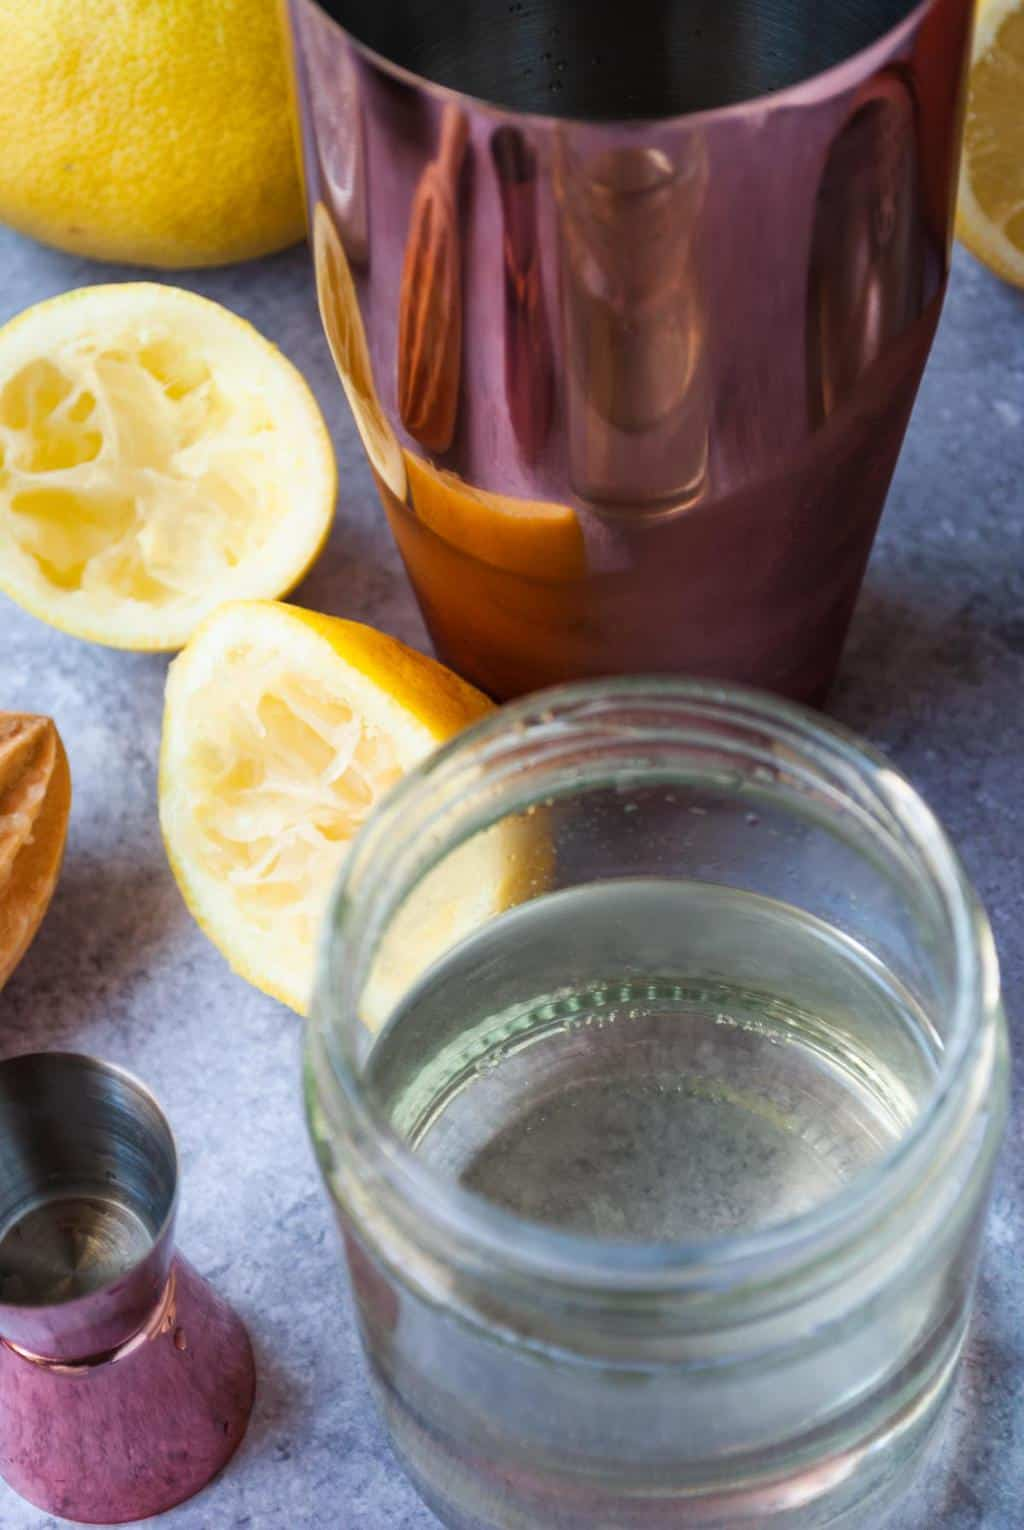 Amaretto Sour Drink - Ingredients to make a simple syrup